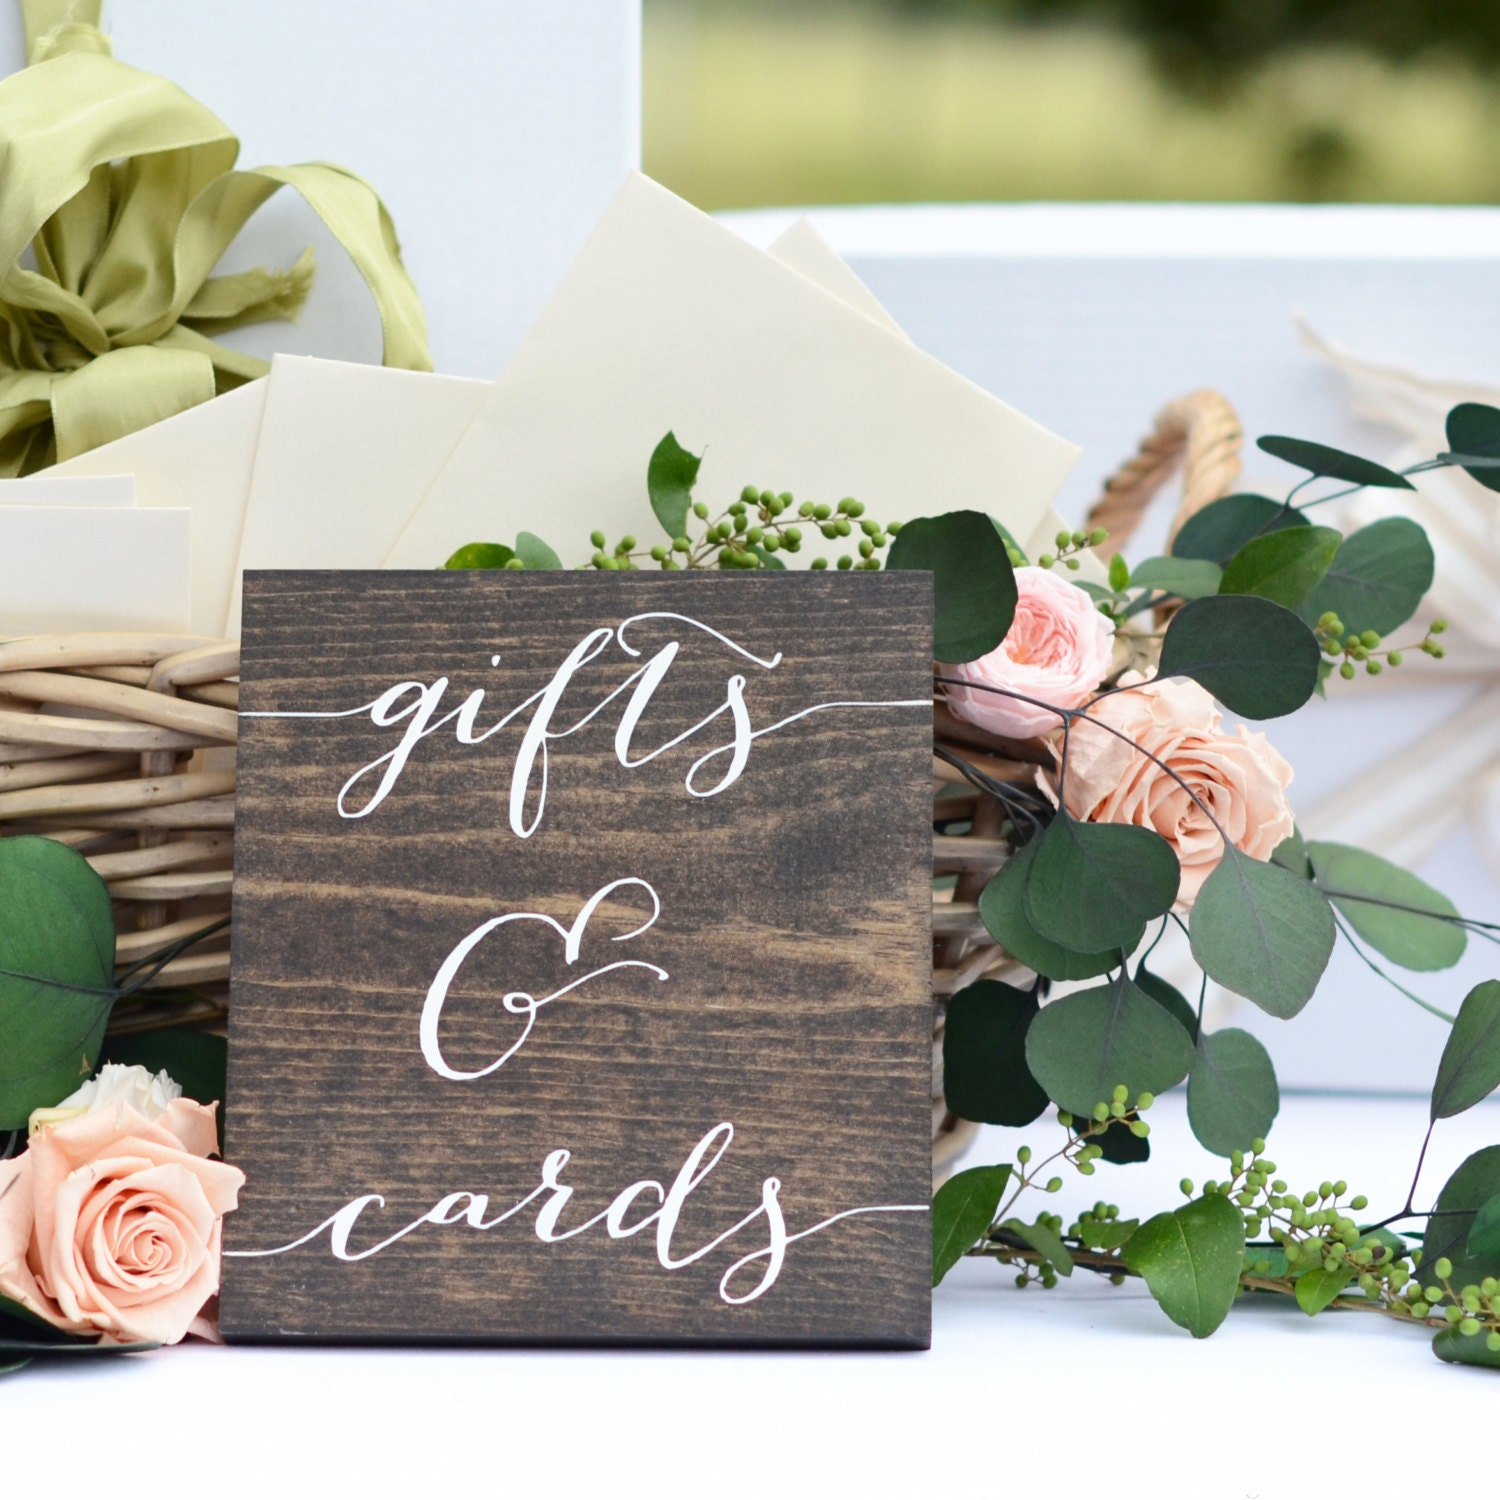 Gifts and cards sign wedding gift table sign gifts sign zoom negle Images